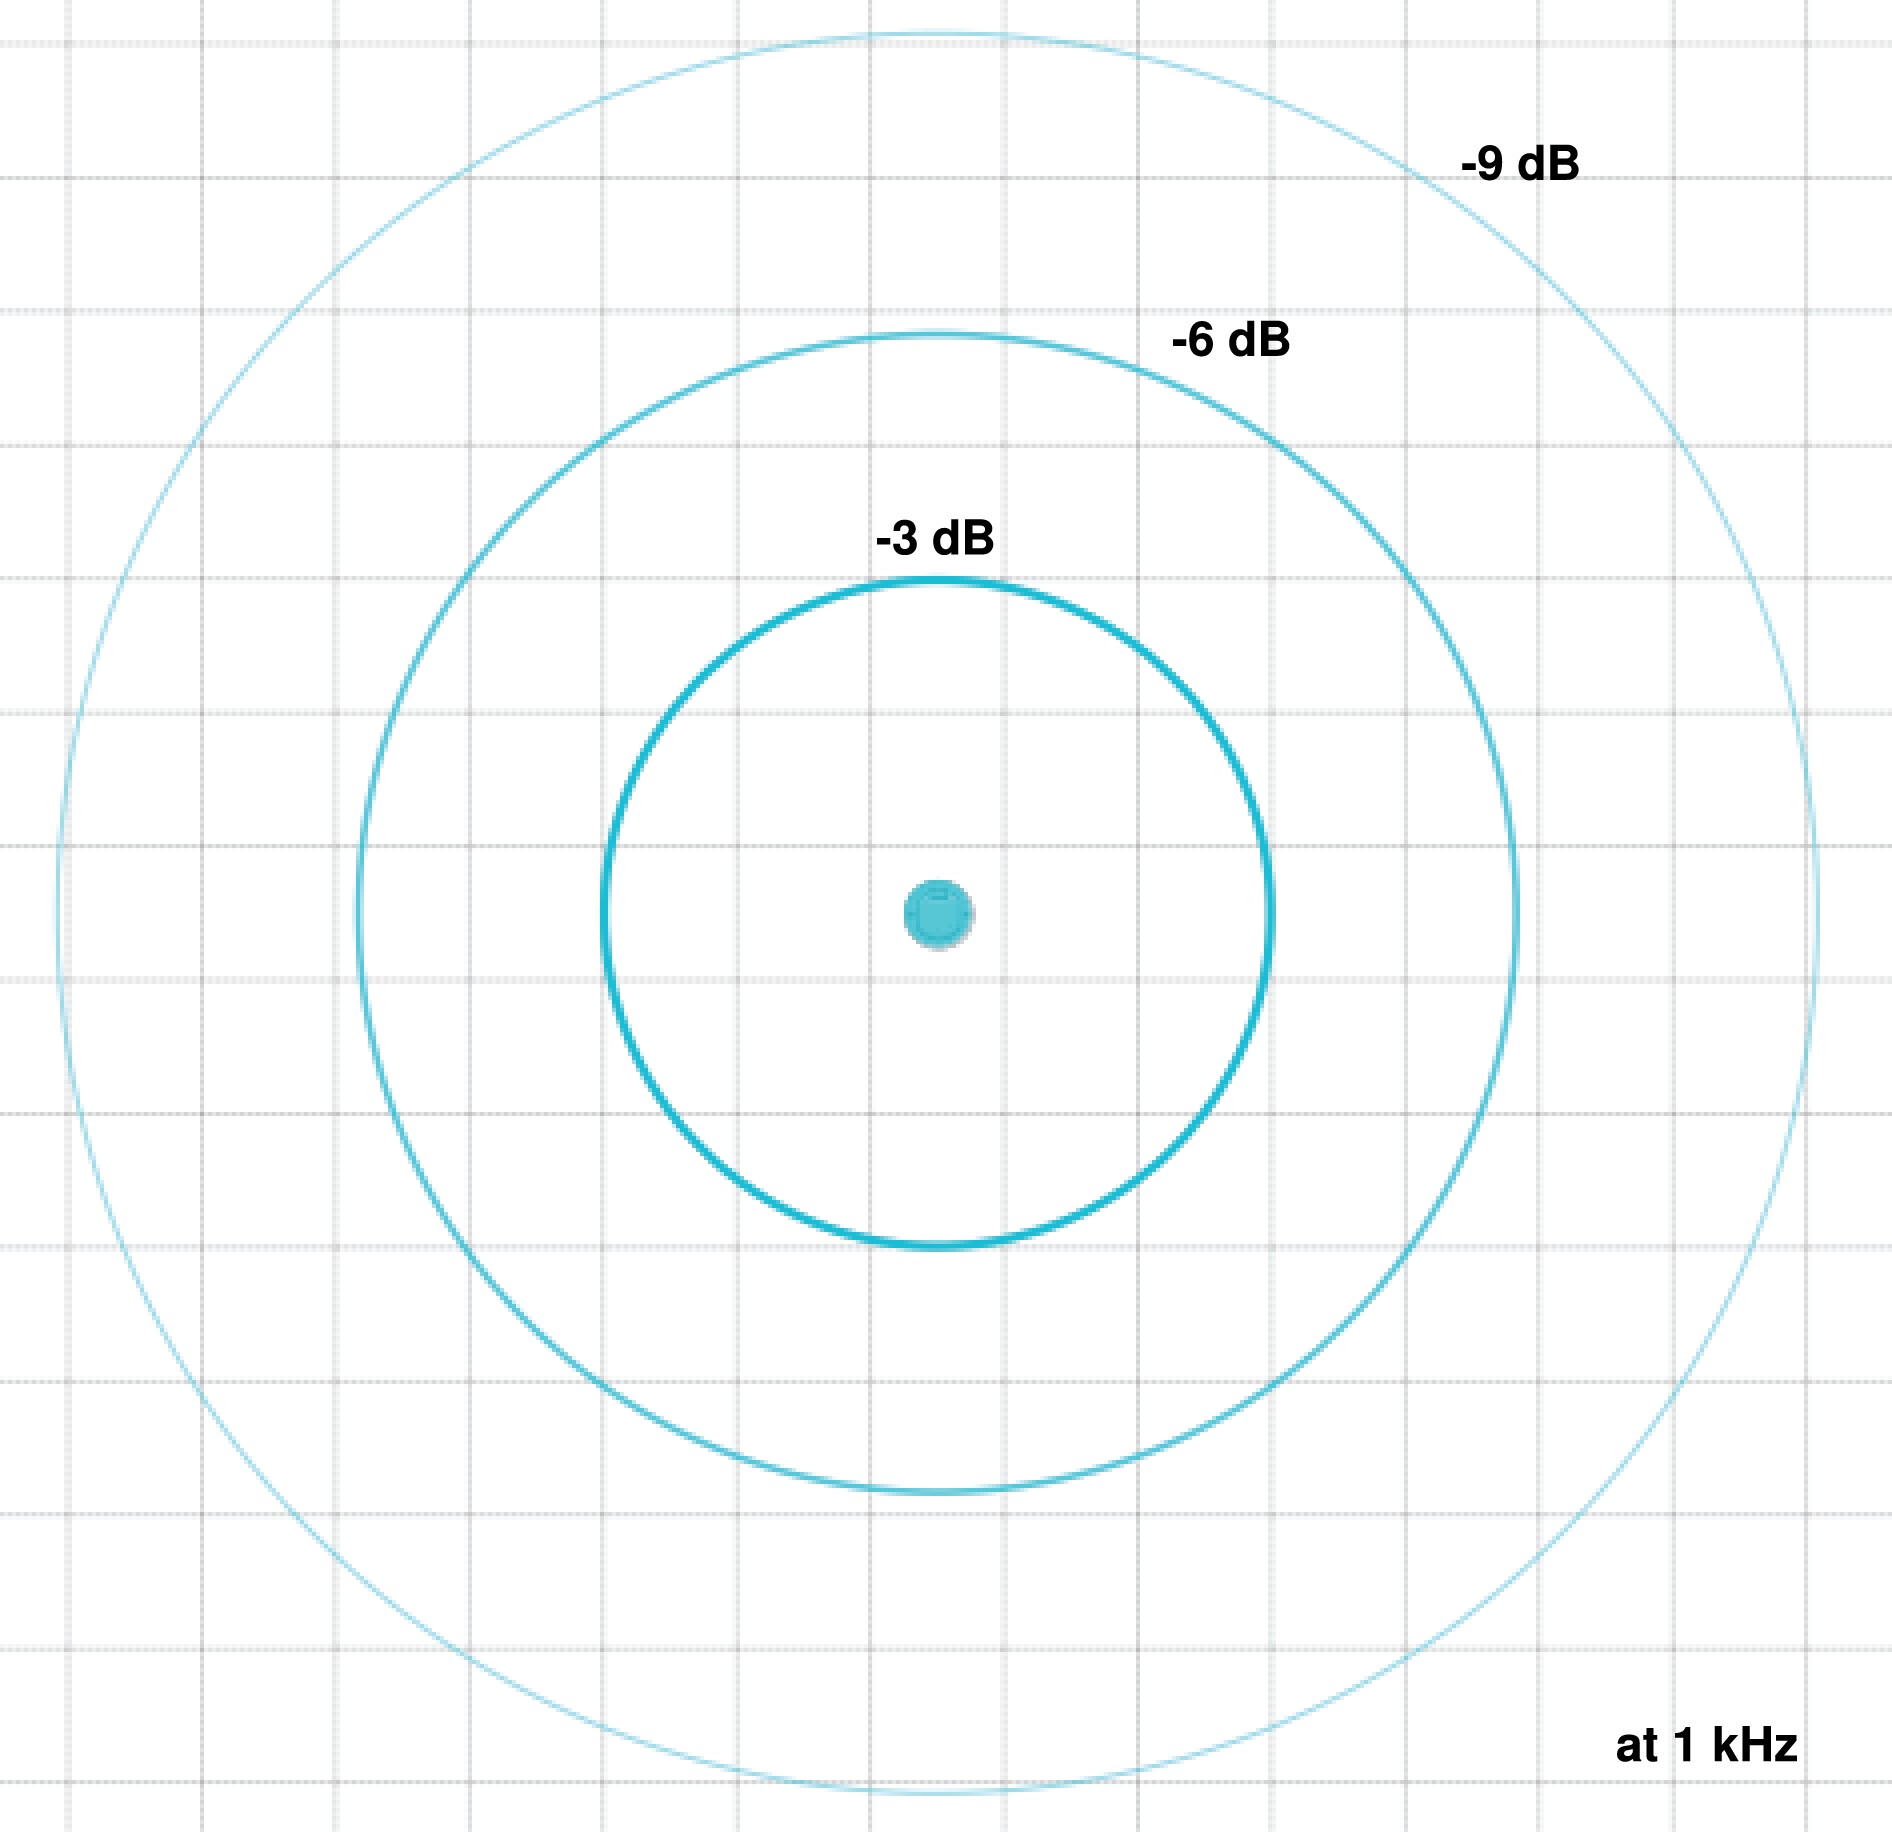 Designer screenshot showing the MXN5-C loudspeaker's coverage rings for -3, -6, and -9 dB at 1 kHz.